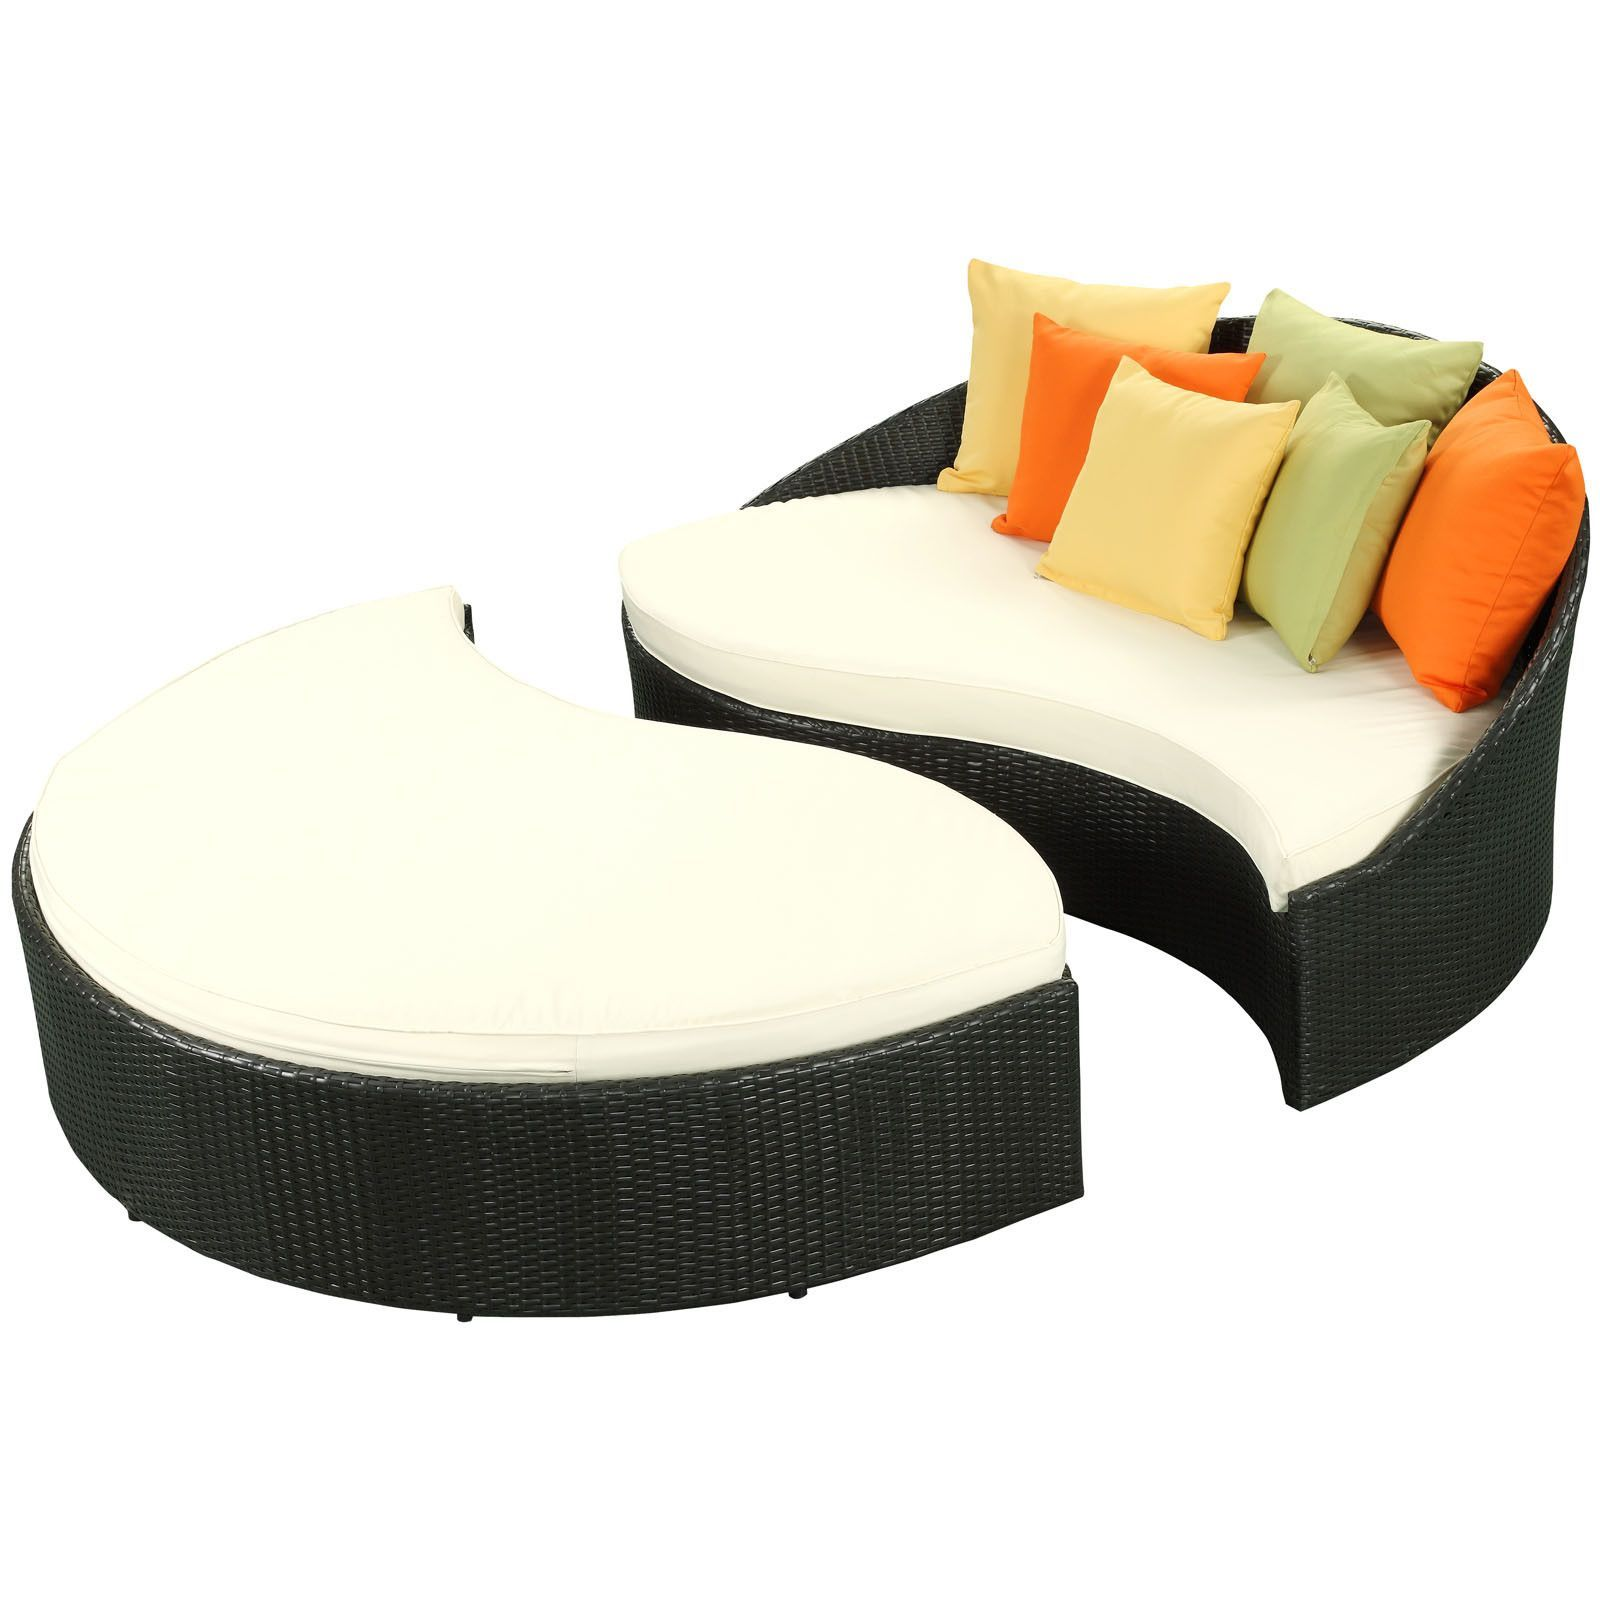 The Mystique Outdoor Patio Daybed Espresso White ... on Living Spaces Outdoor Daybed id=56430